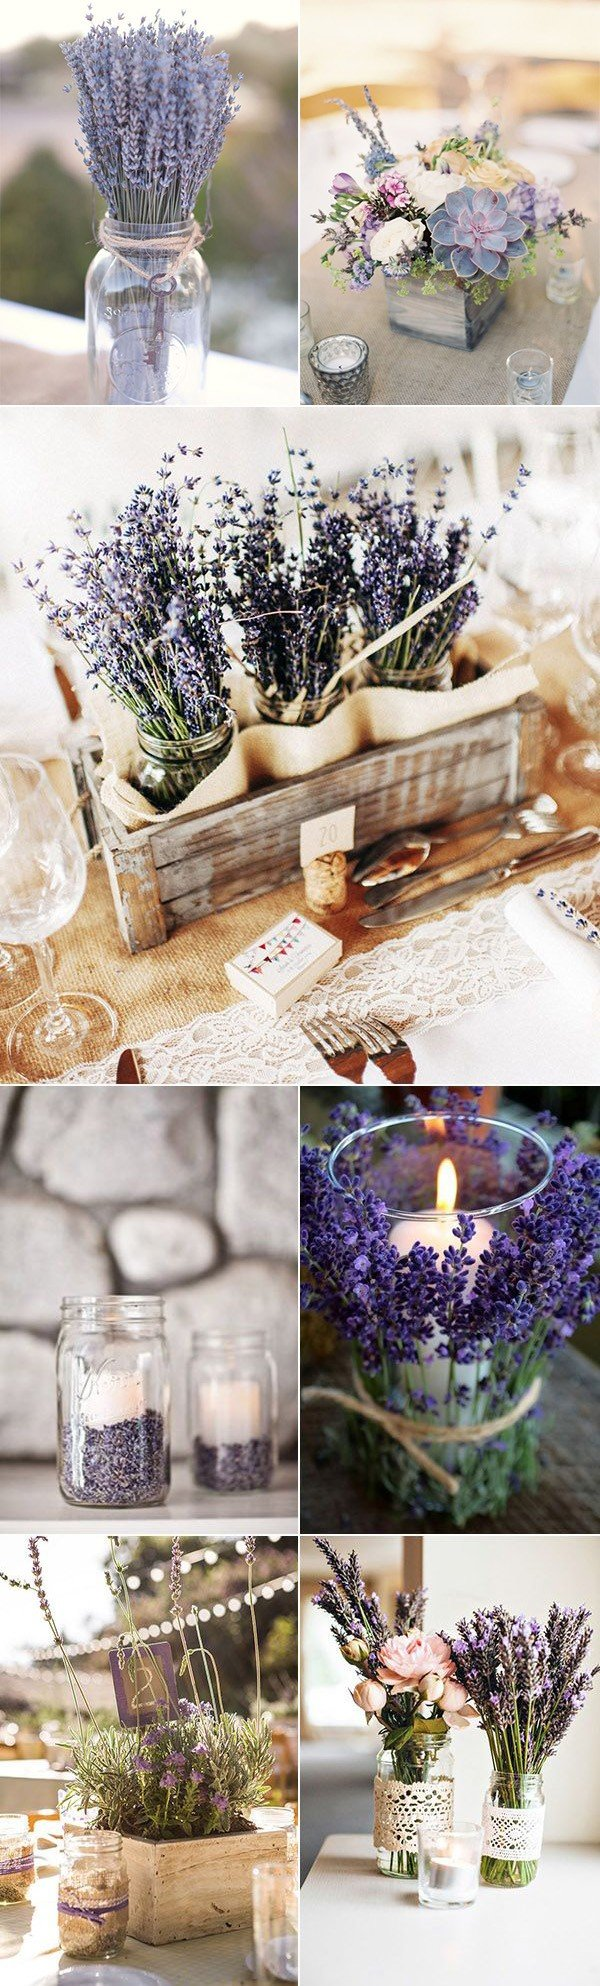 romantic lavender themed wedding centerpiece ideas